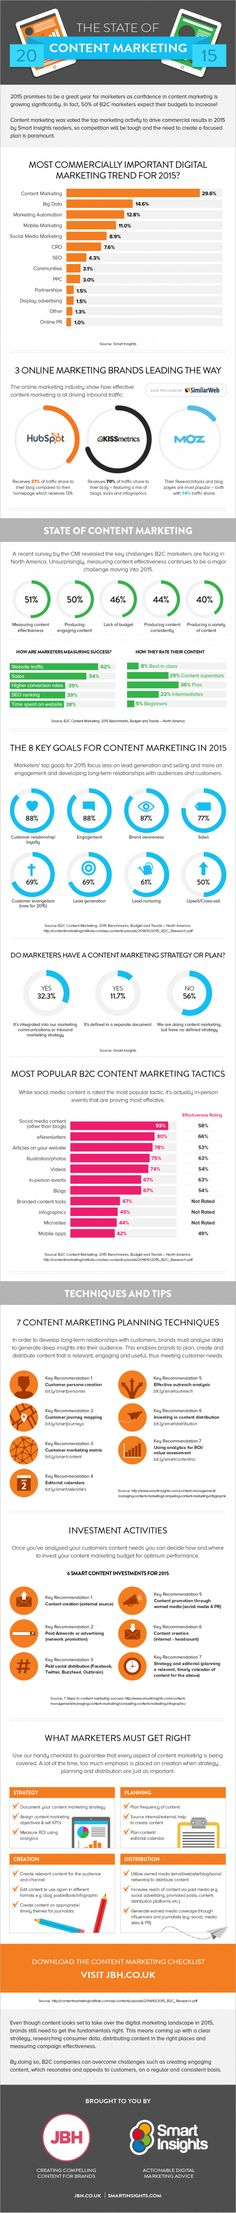 The State of Content Marketing 2015 [Infographic] Content marketing planning and effective marketing tactics In our recent post on the latest marketing trends, we polled readers to ask for their opinion. Inbound Marketing, Digital Marketing Trends, Marketing Tactics, Content Marketing Strategy, Marketing Plan, Business Marketing, Internet Marketing, Online Marketing, Social Media Marketing